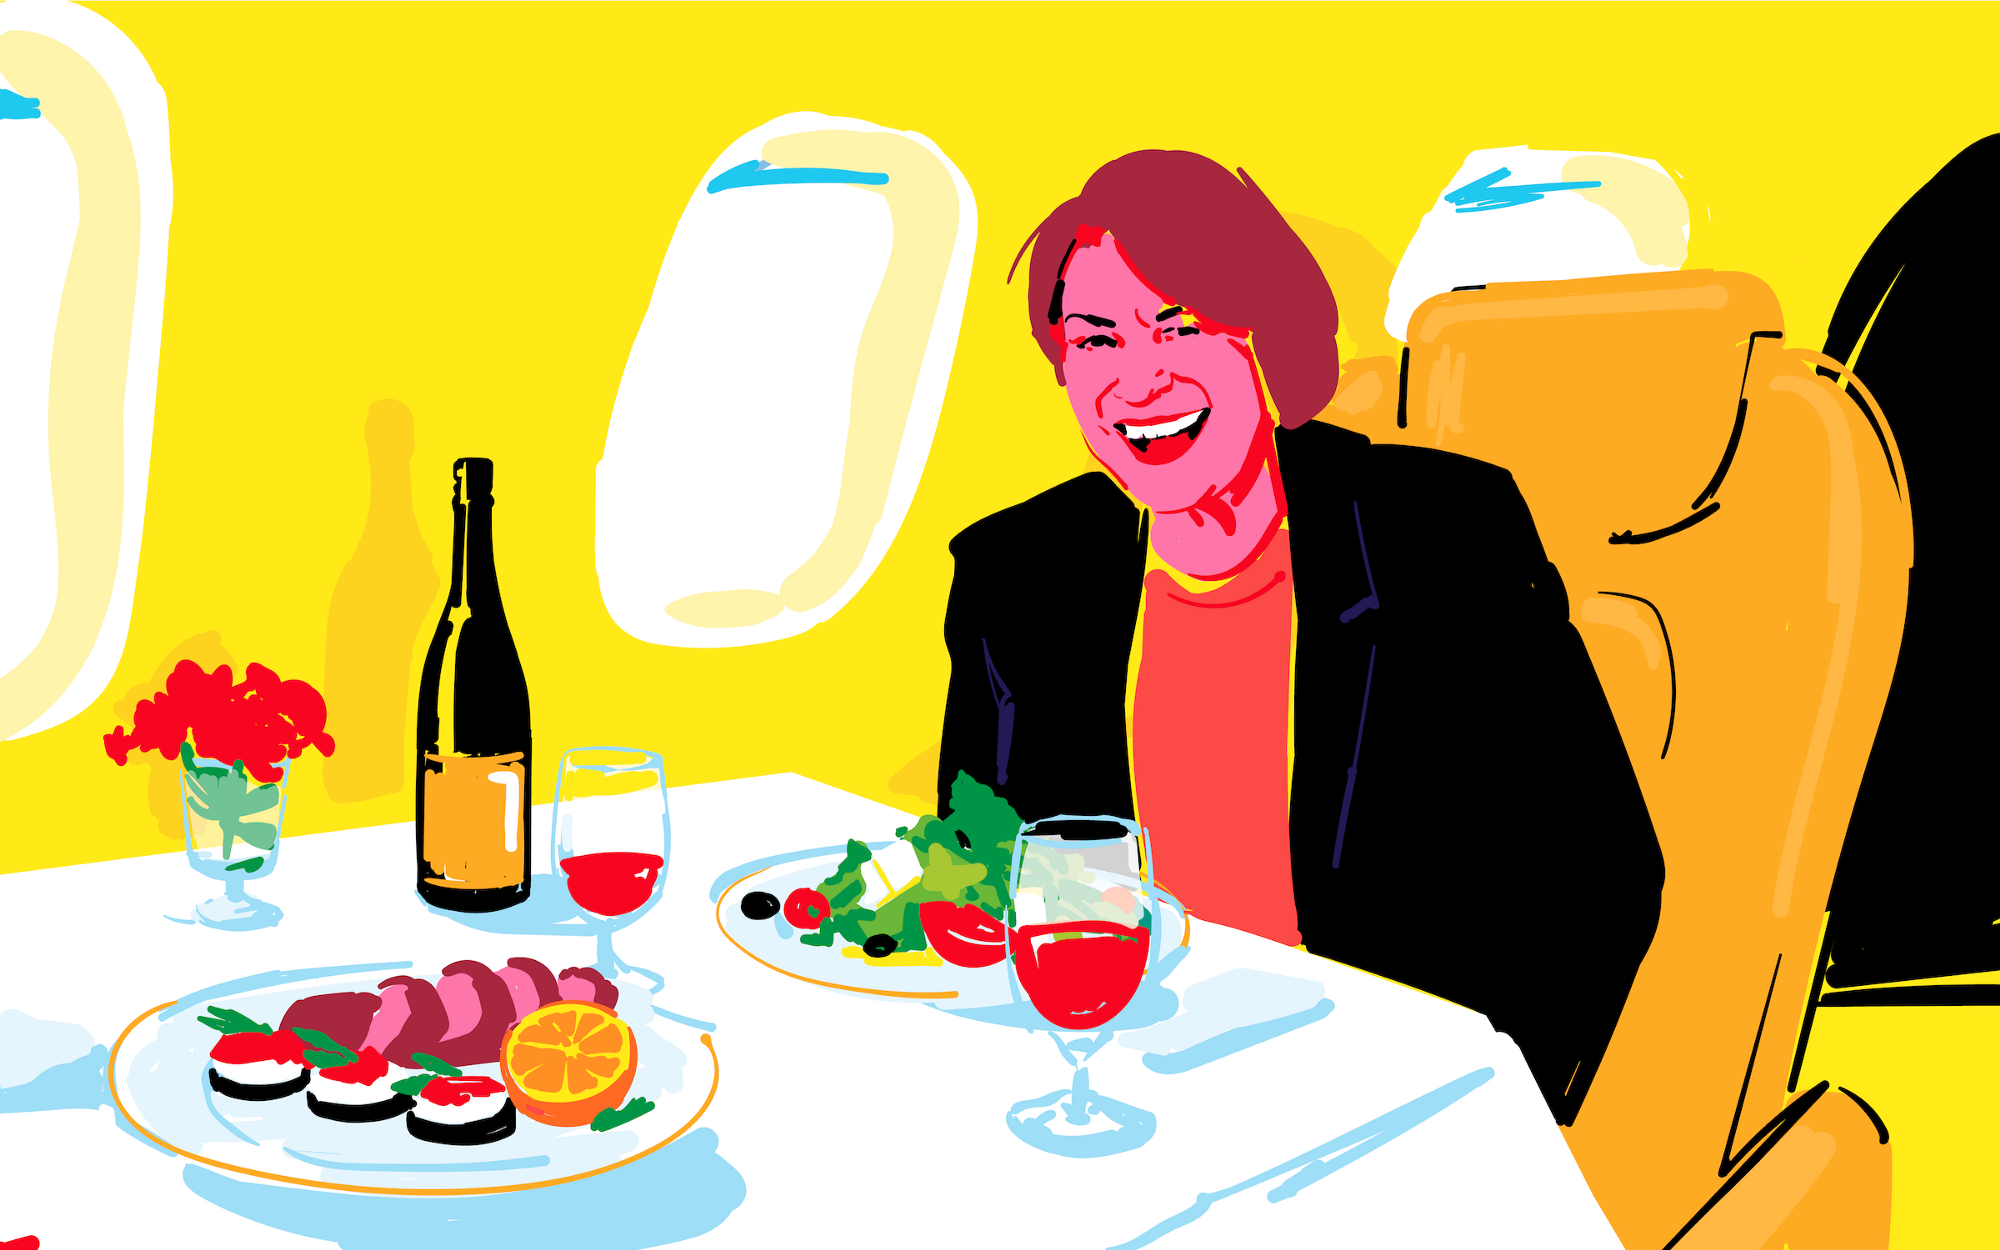 Sketchy illustration of Amy Klobuchar smiling in an airplane, a fancy dinner on a table in front of her.